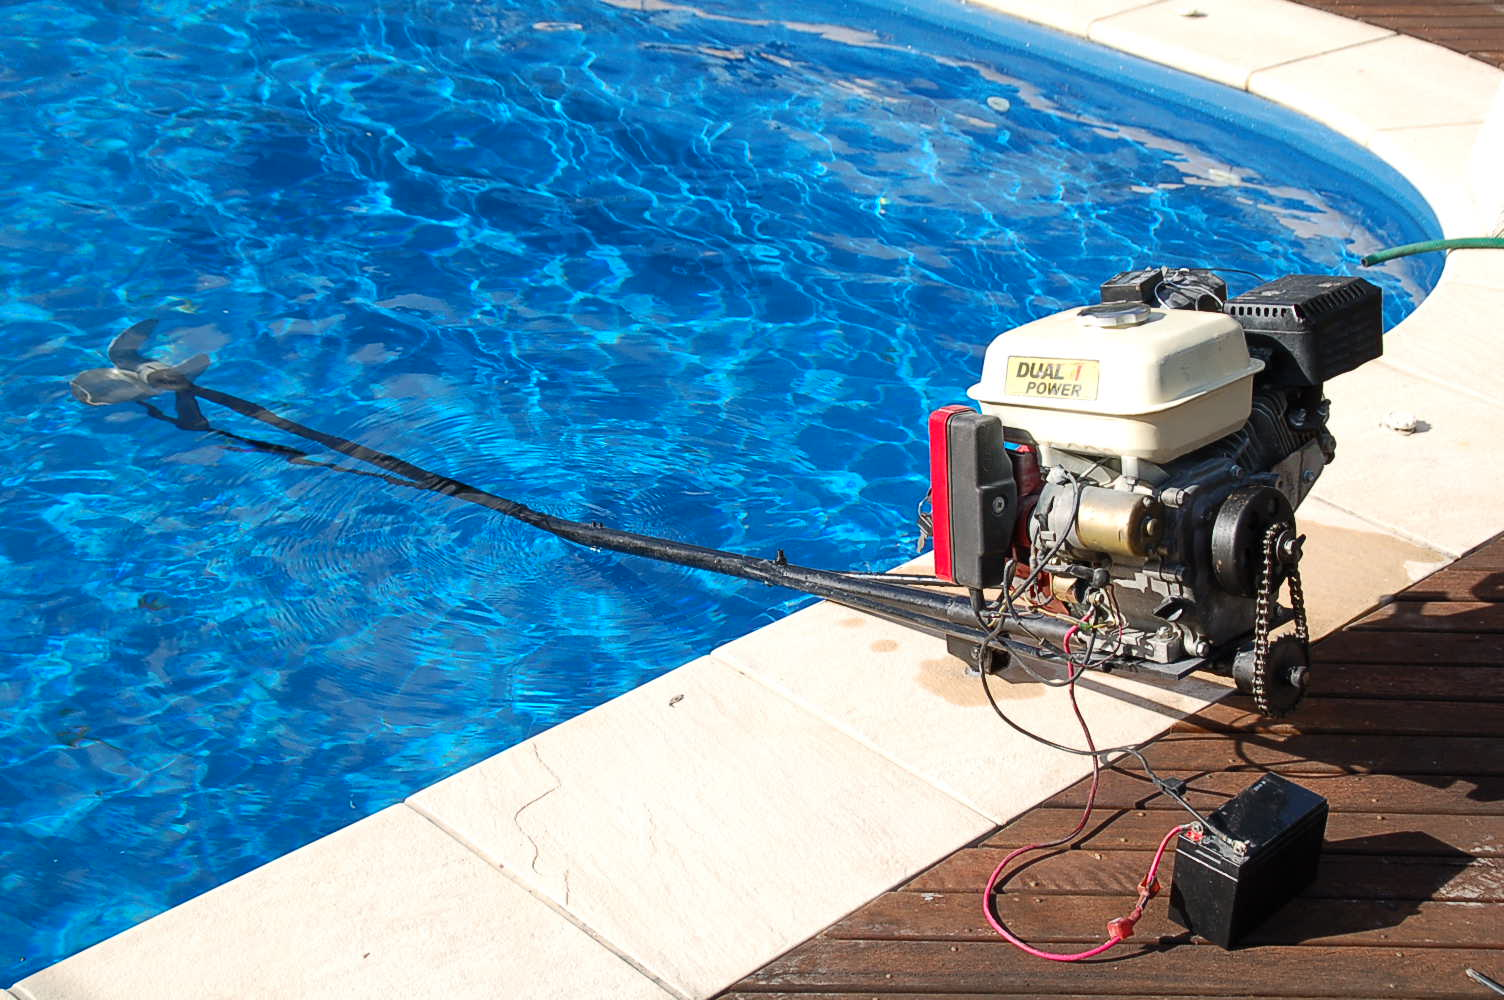 Diy outboard motor for Air cooled outboard motor kits